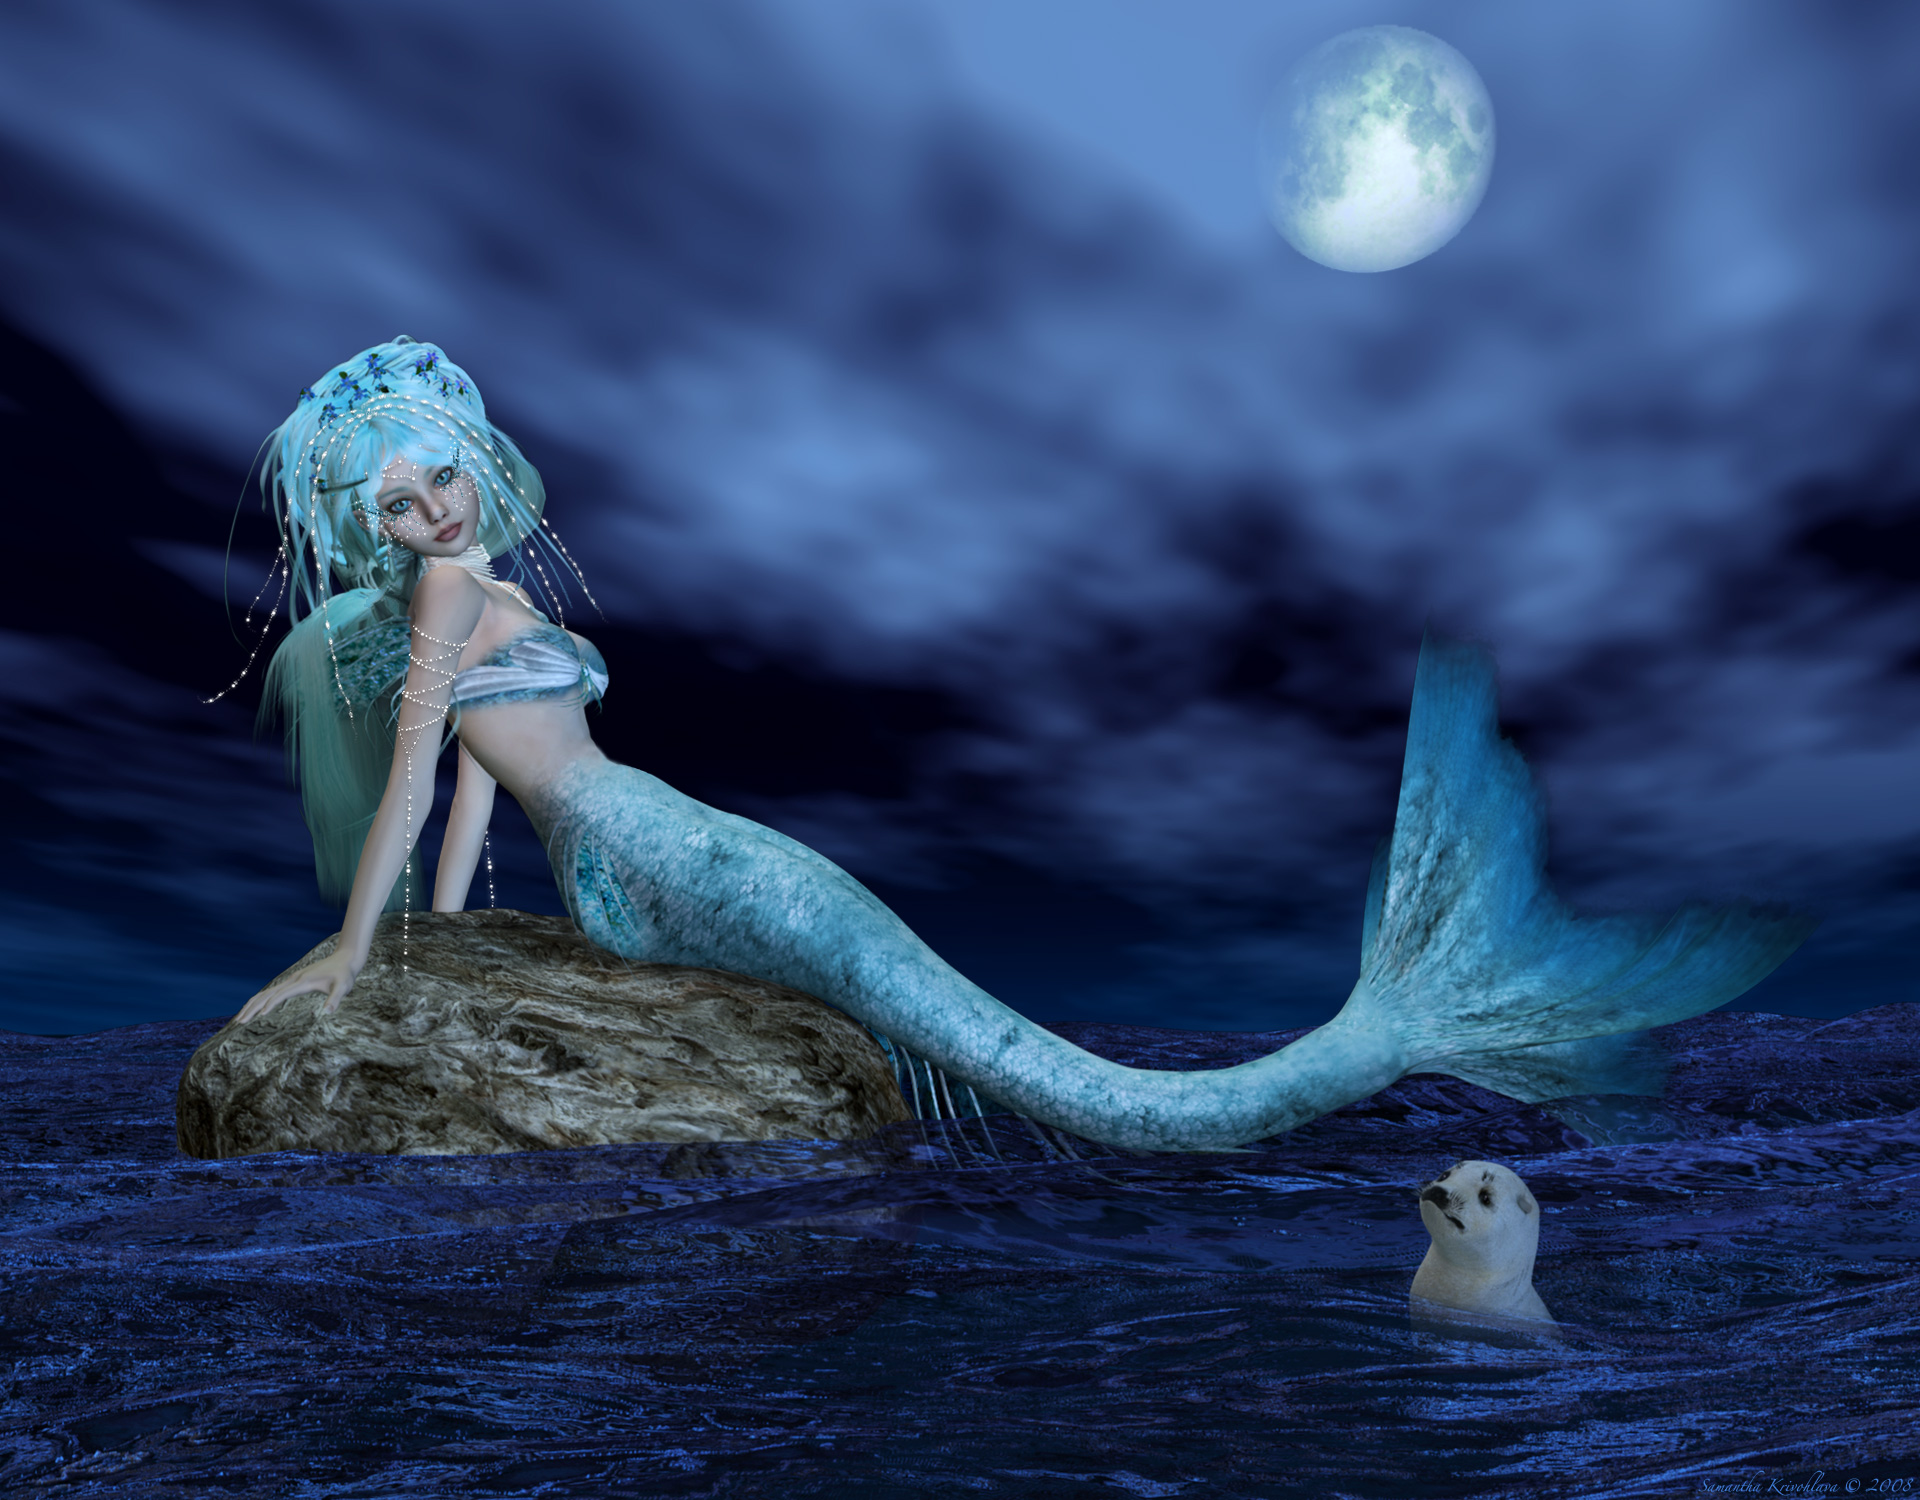 Anime Mermaids at Night 1559.69 Kb